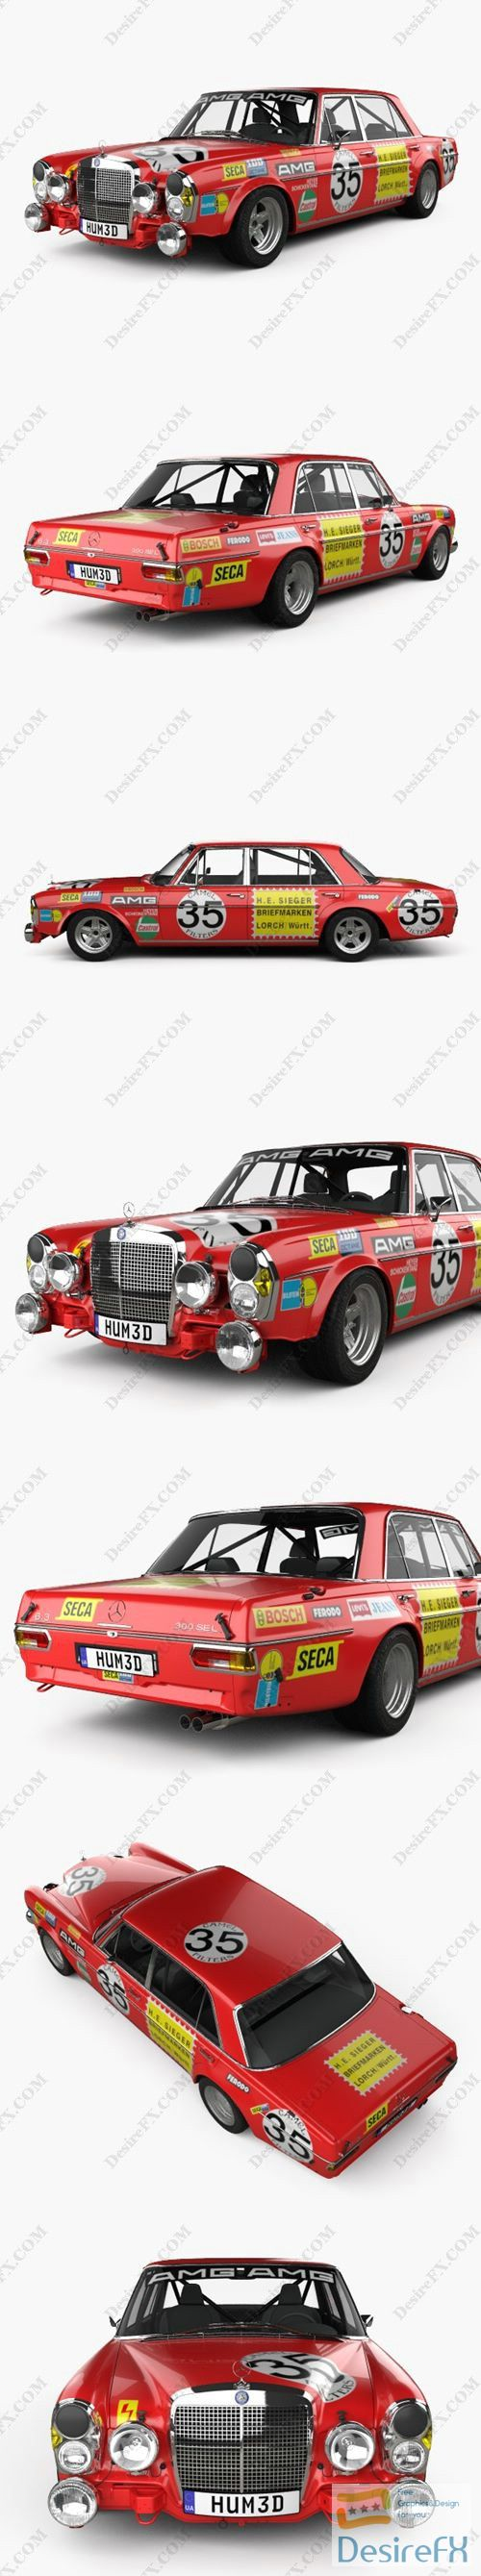 Mercedes-Benz 300 SEL AMG Red Pig 1969 3D Model